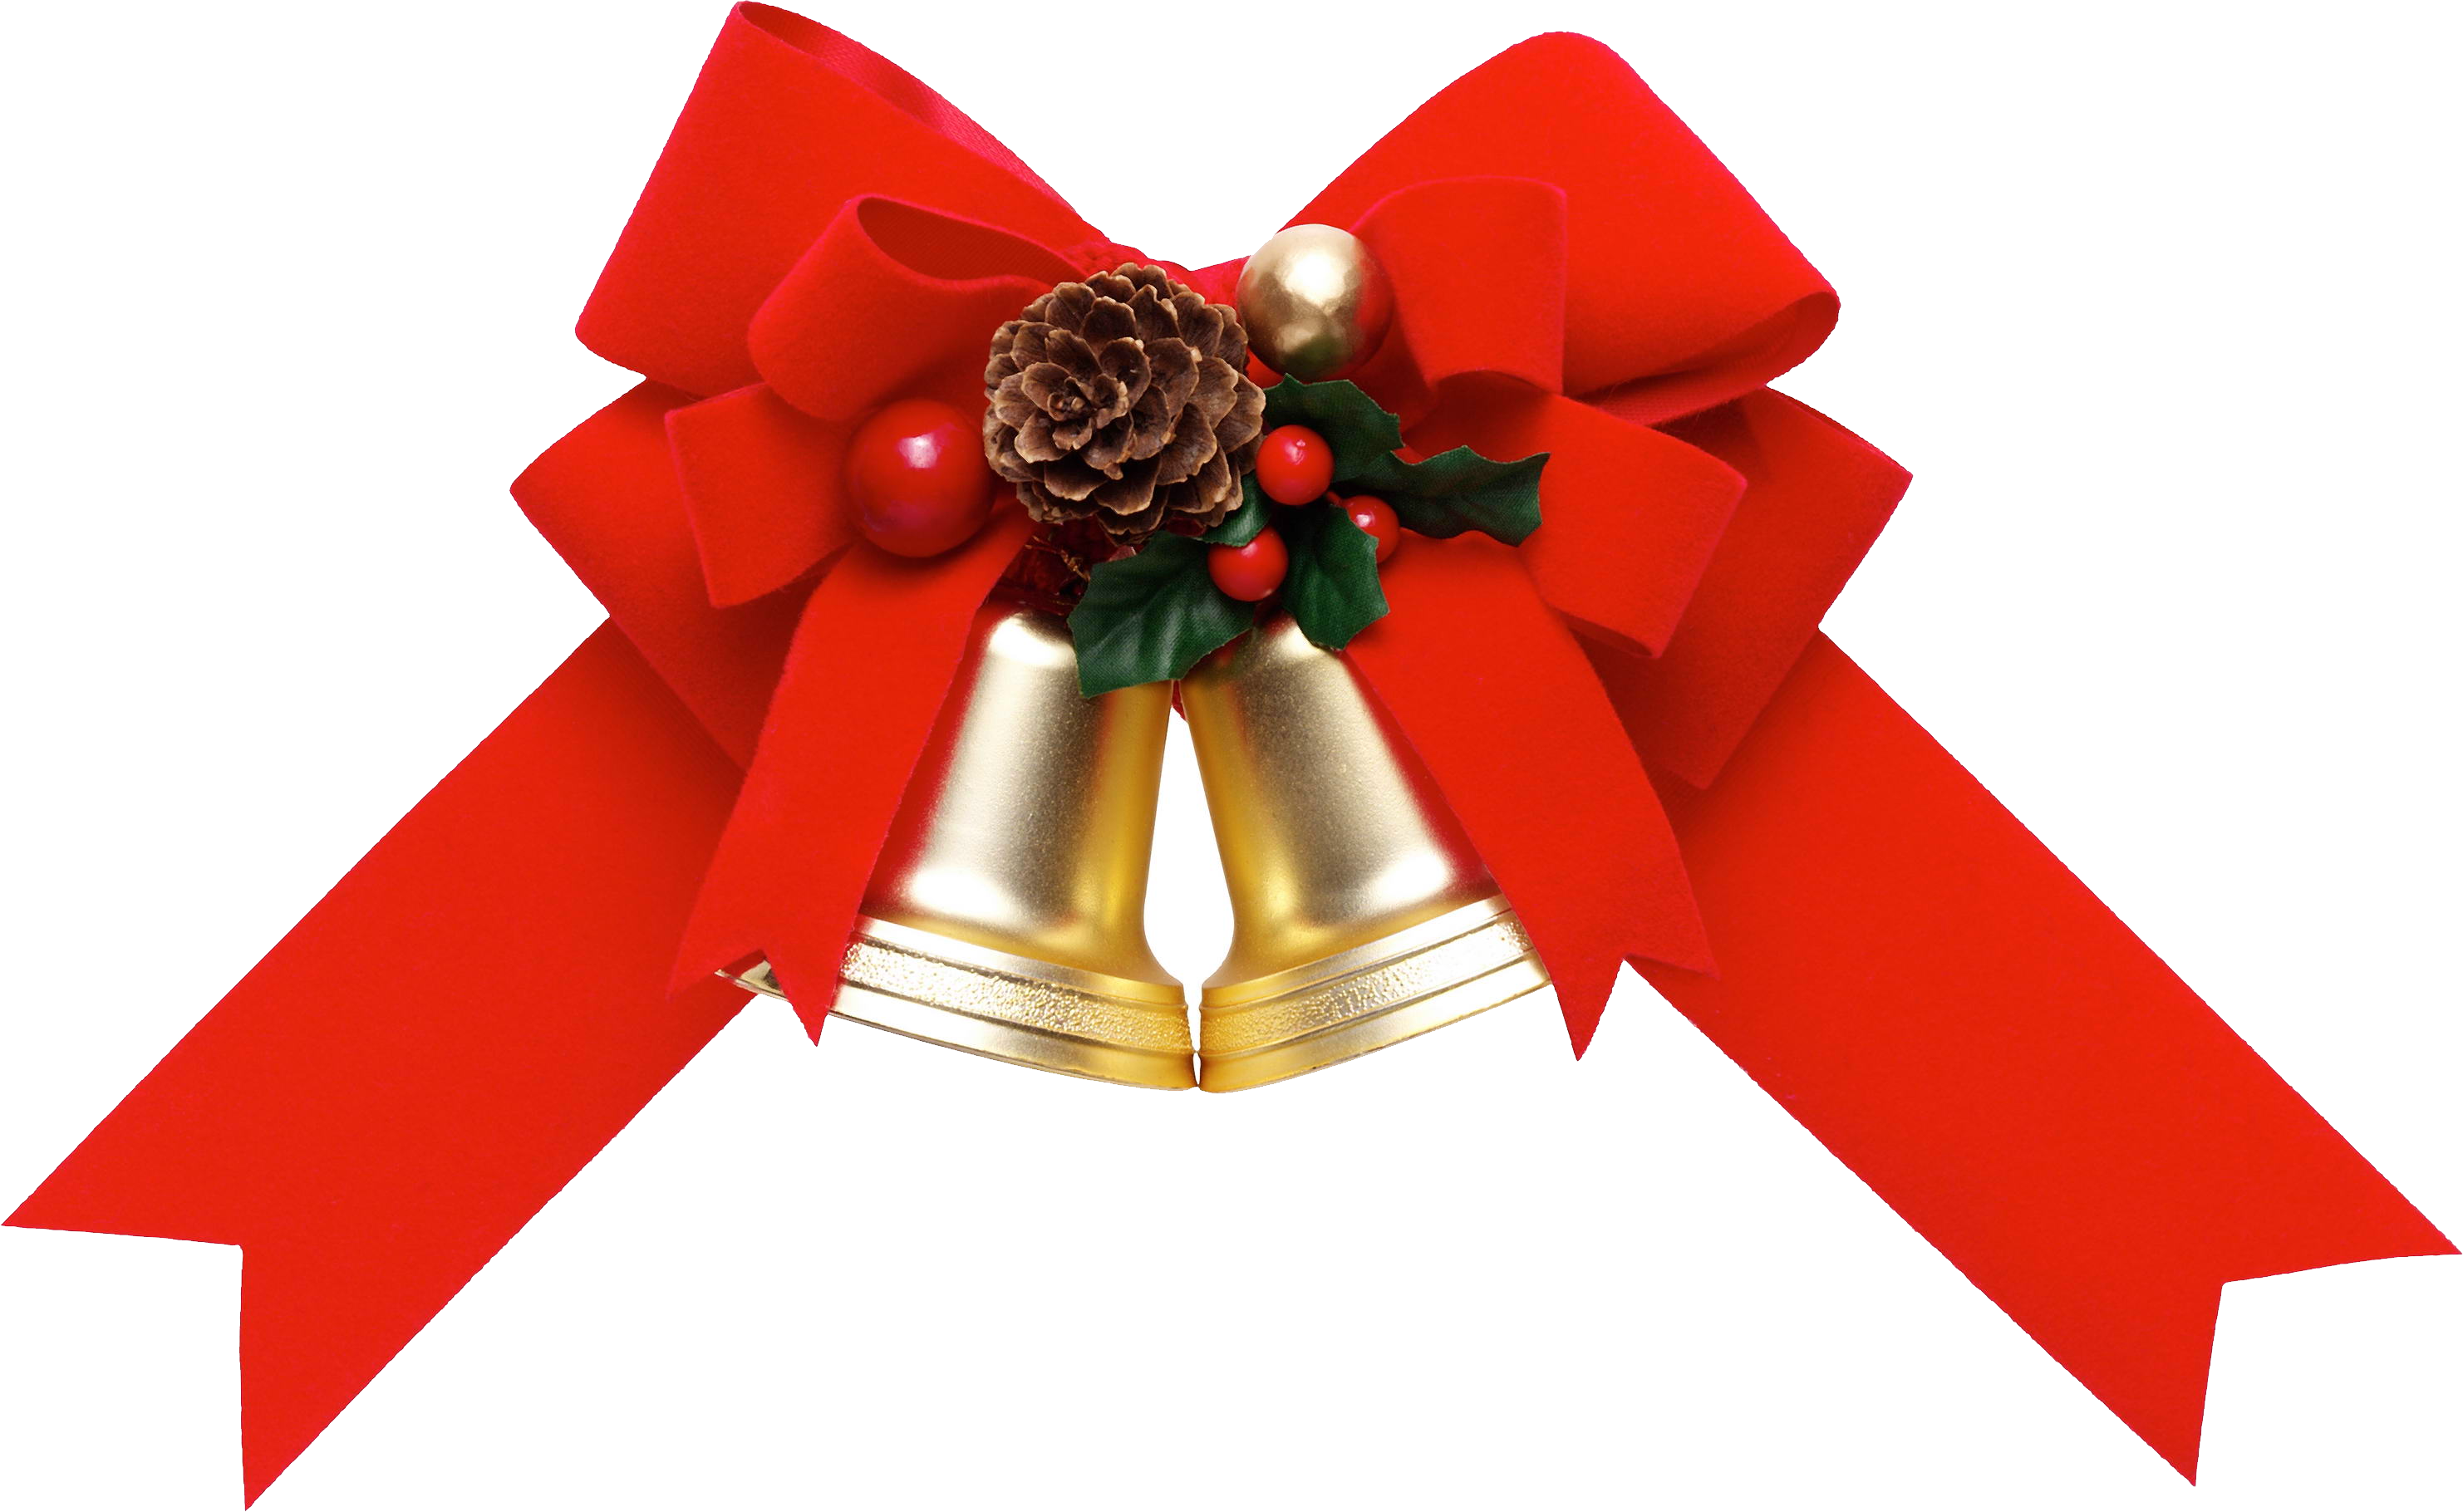 Clipart christmas flower and ribbon png graphic free download Clipart christmas flower and ribbon png - ClipartFest graphic free download